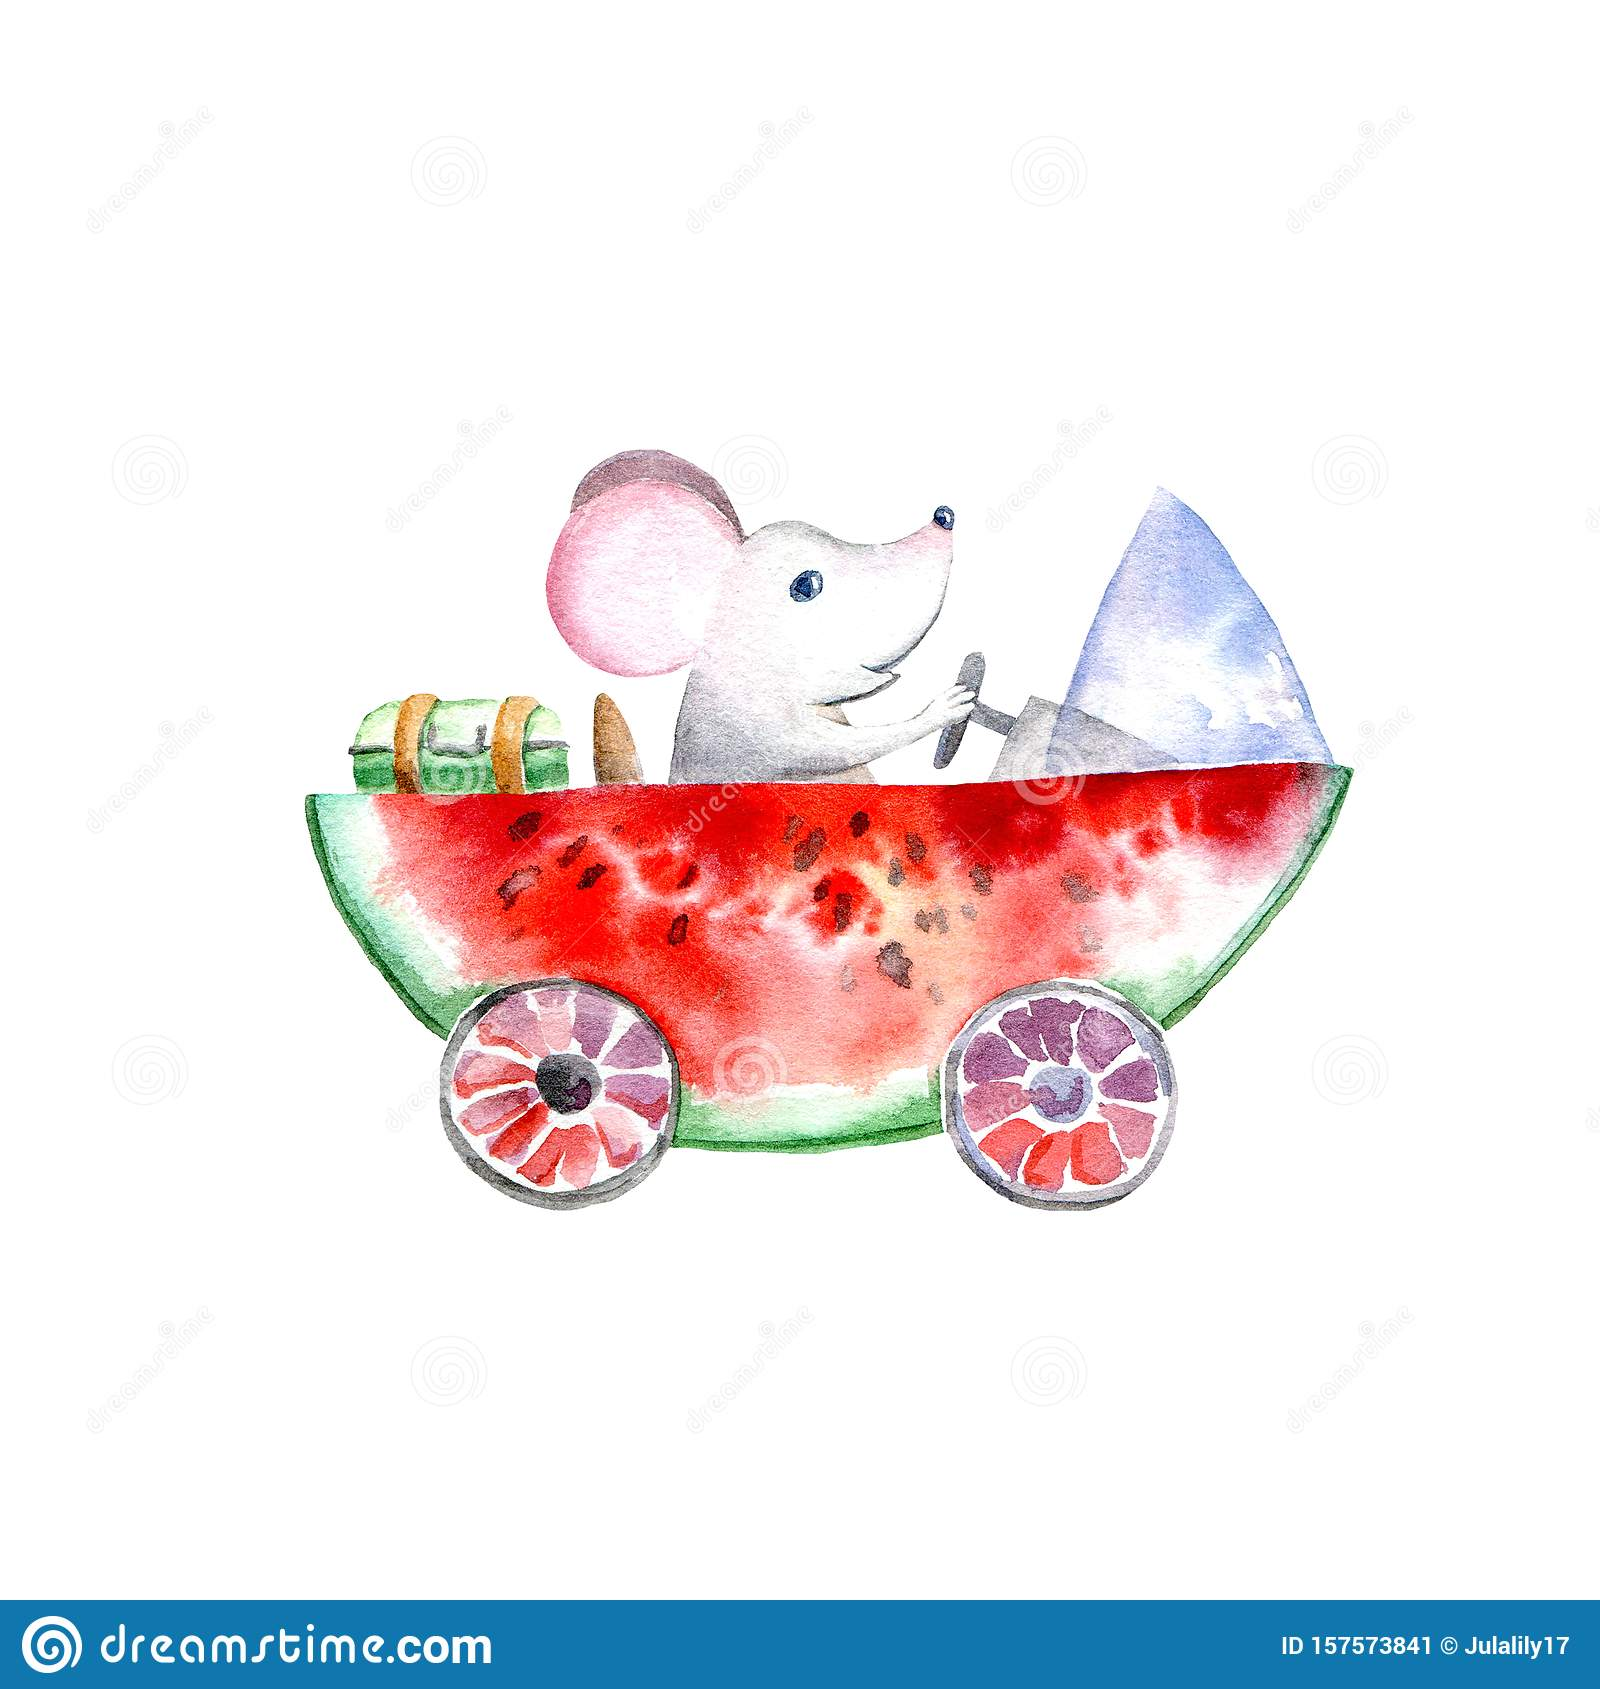 Mouse on a watermelon machine.Travel sketch.